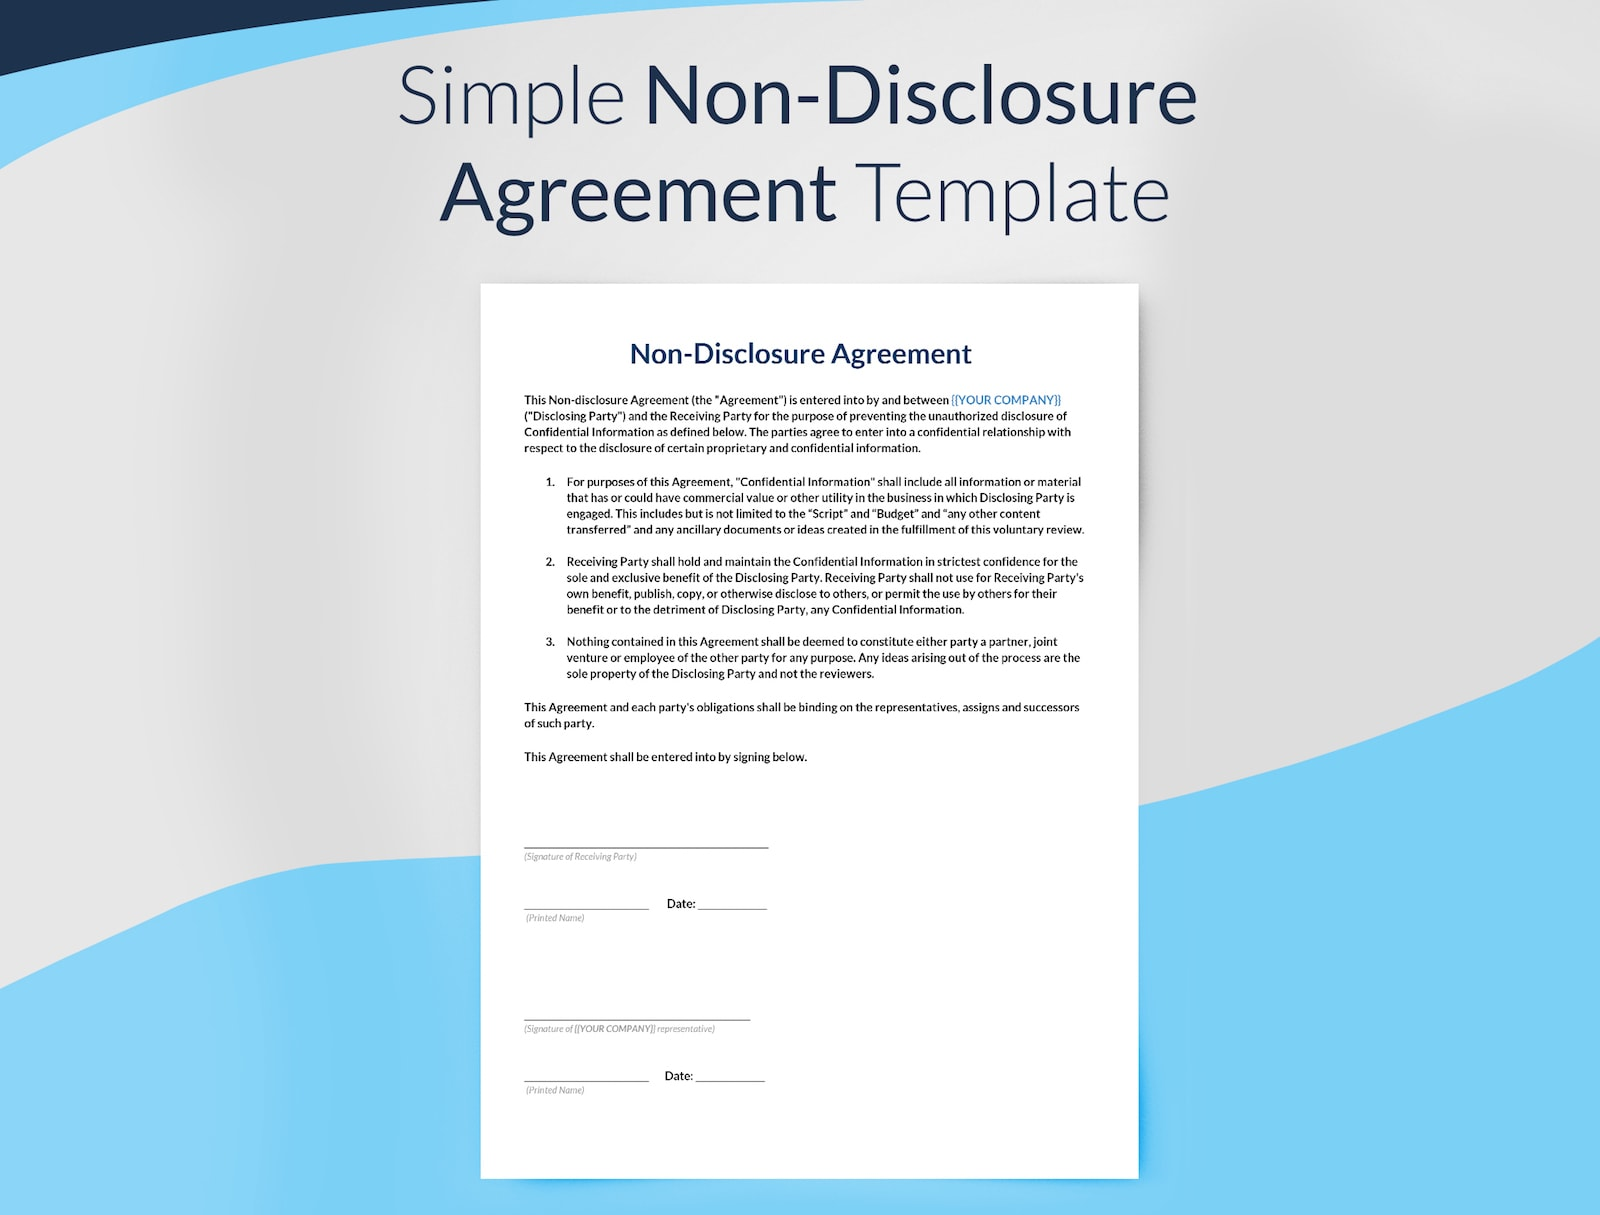 Non disclosure agreement template free download sethero for Basic nda template